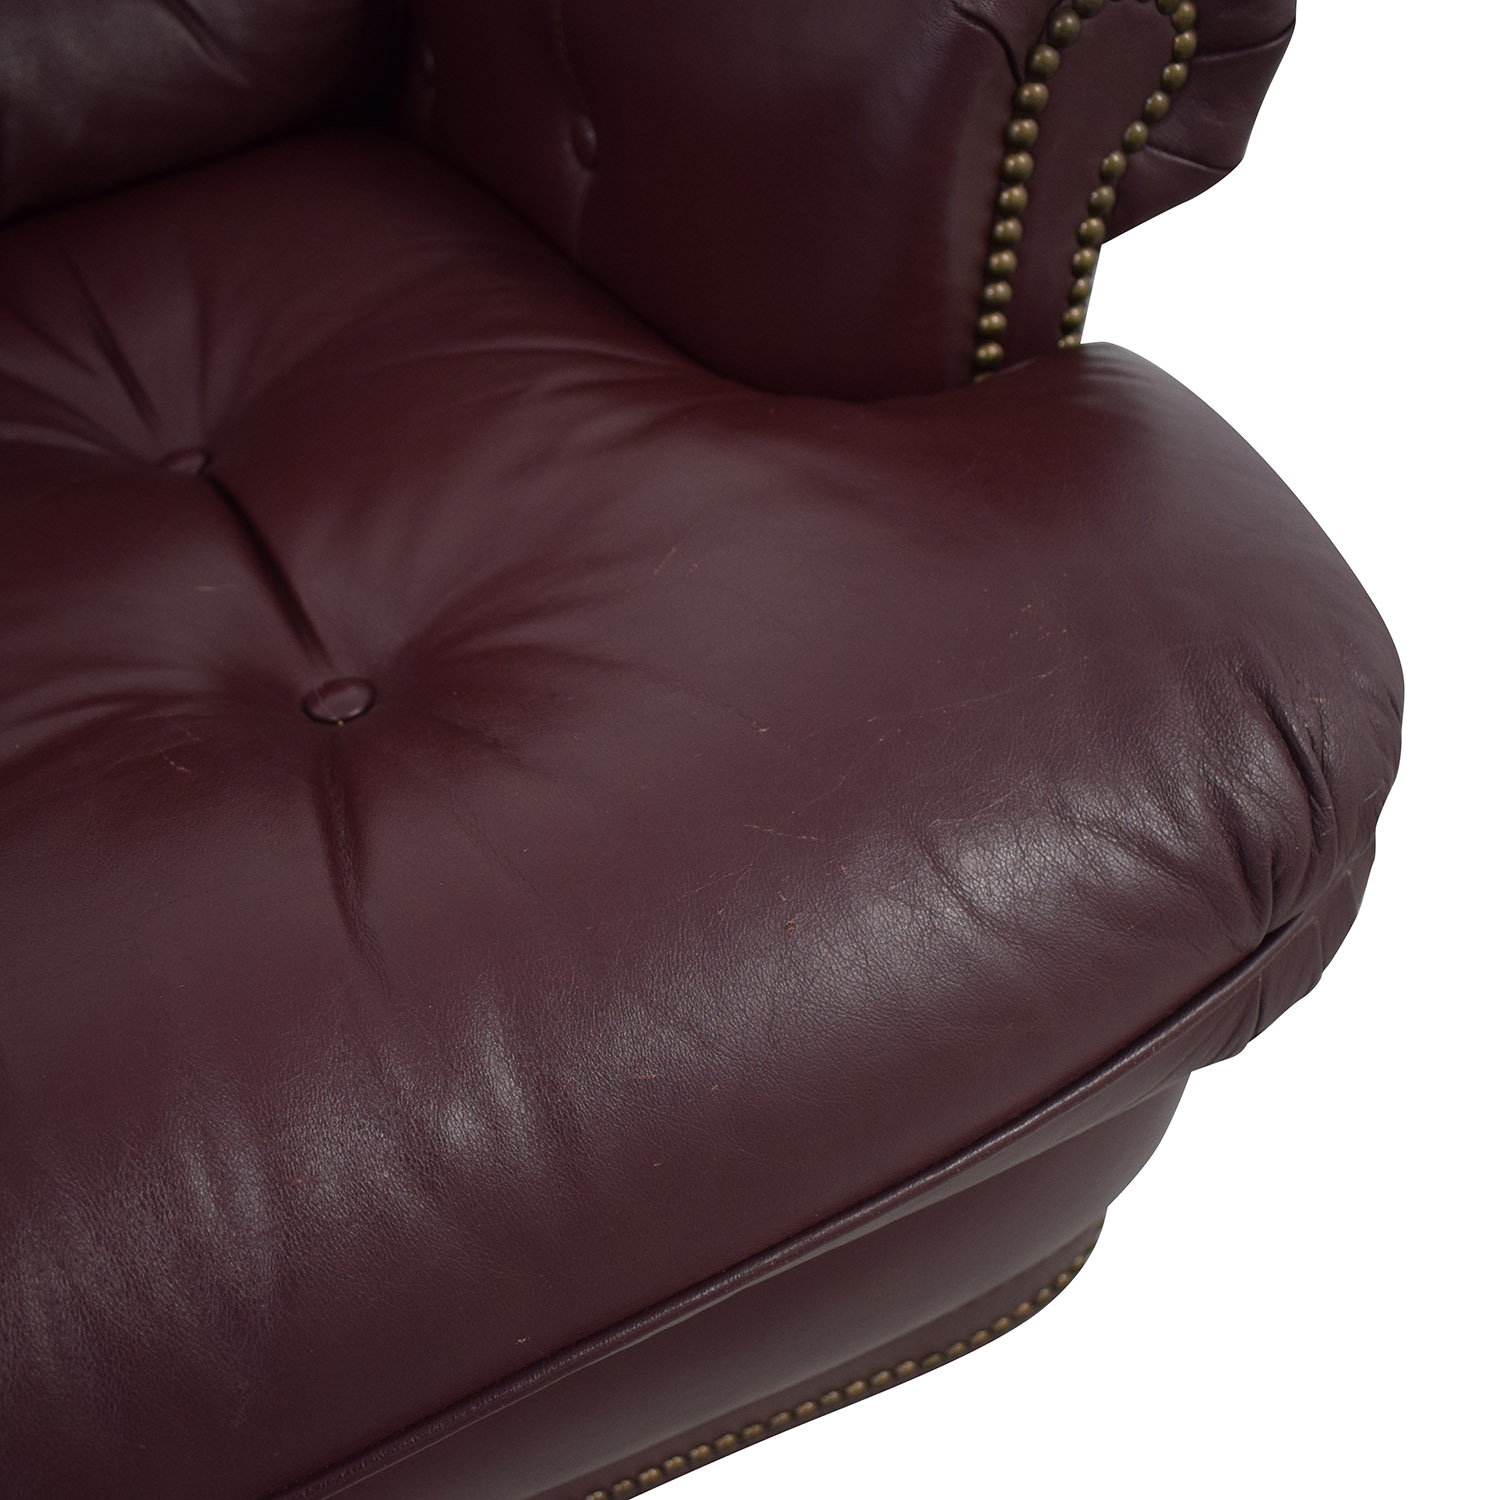 buy Distinctions Furniture Leather Burgundy Recliner Distinctions Furniture Recliners